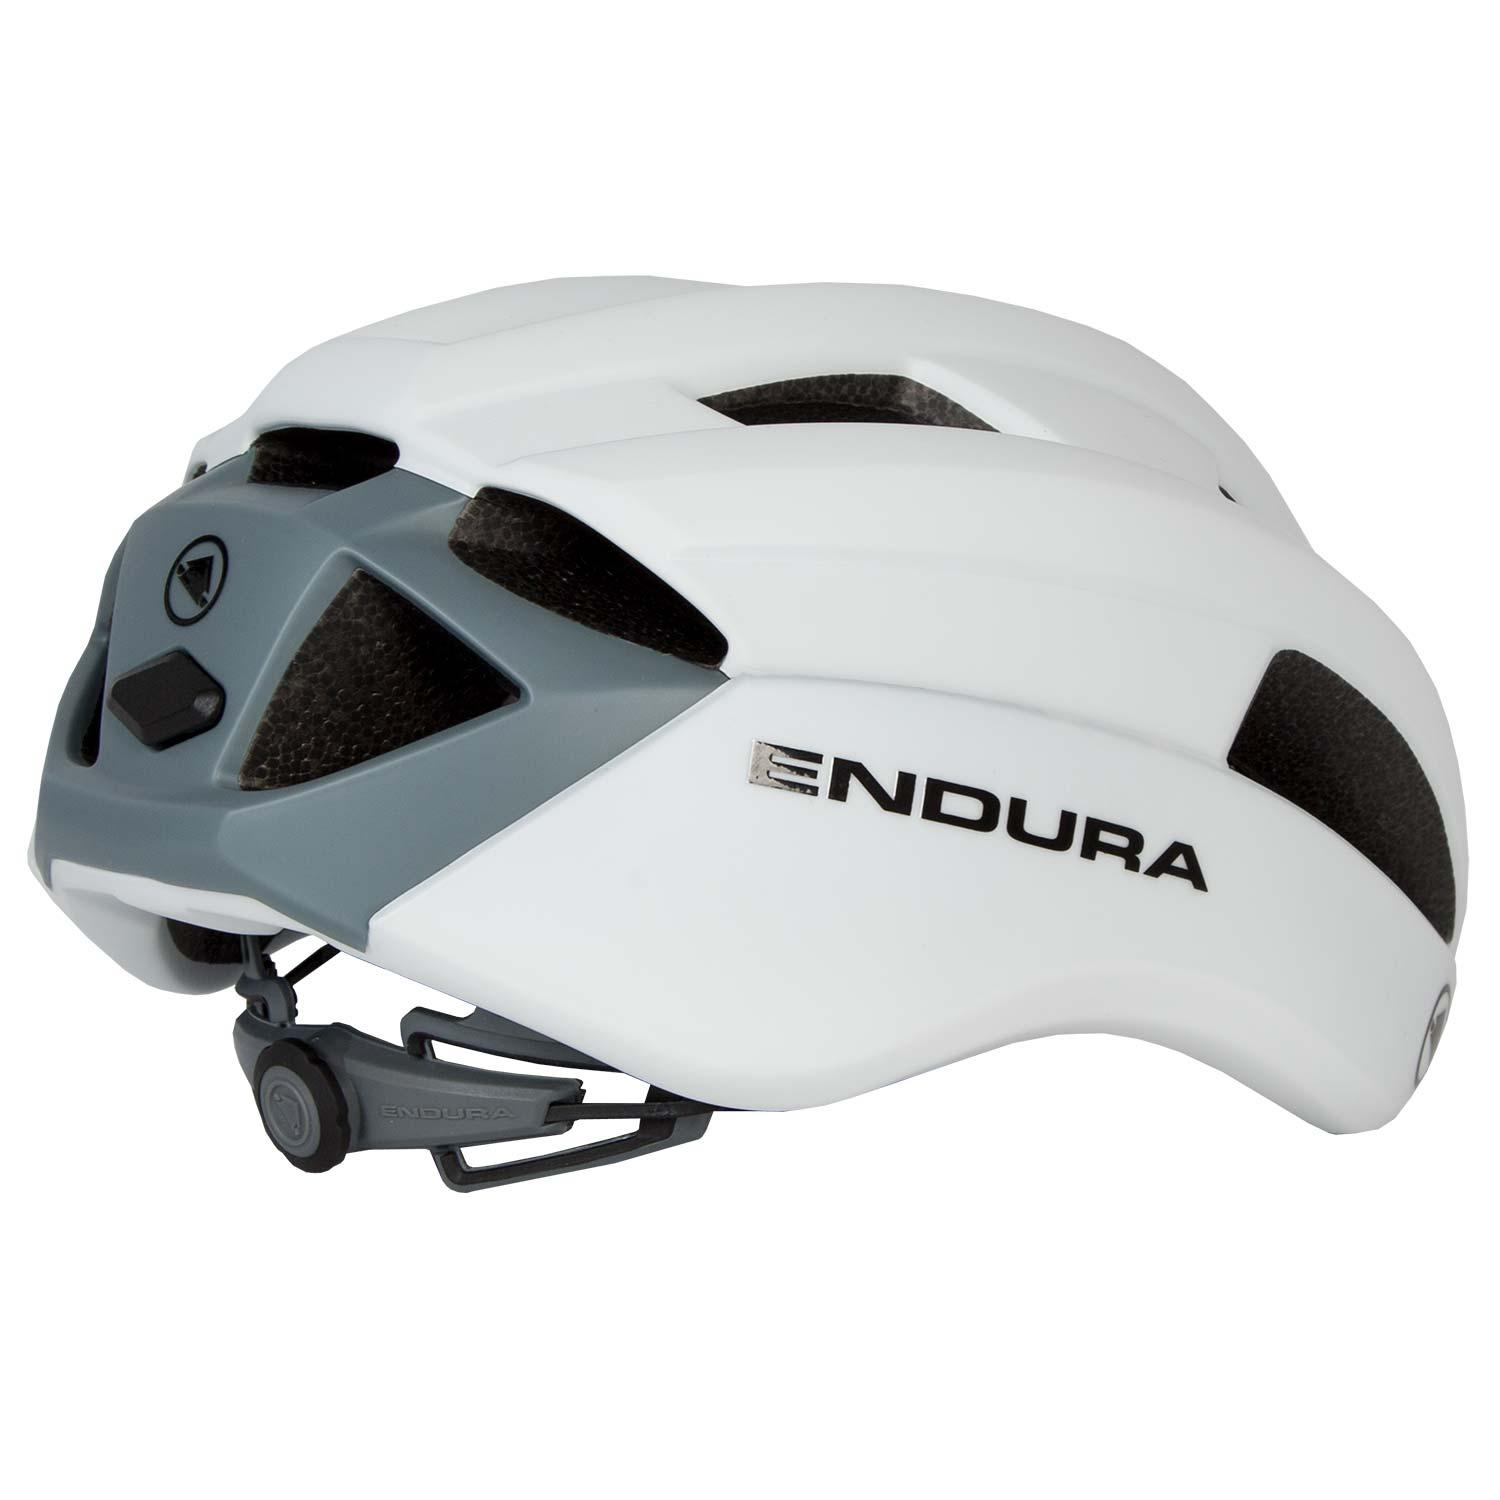 Endura Fietshelm Race Heren Wit / Xtract Helm II: Wit